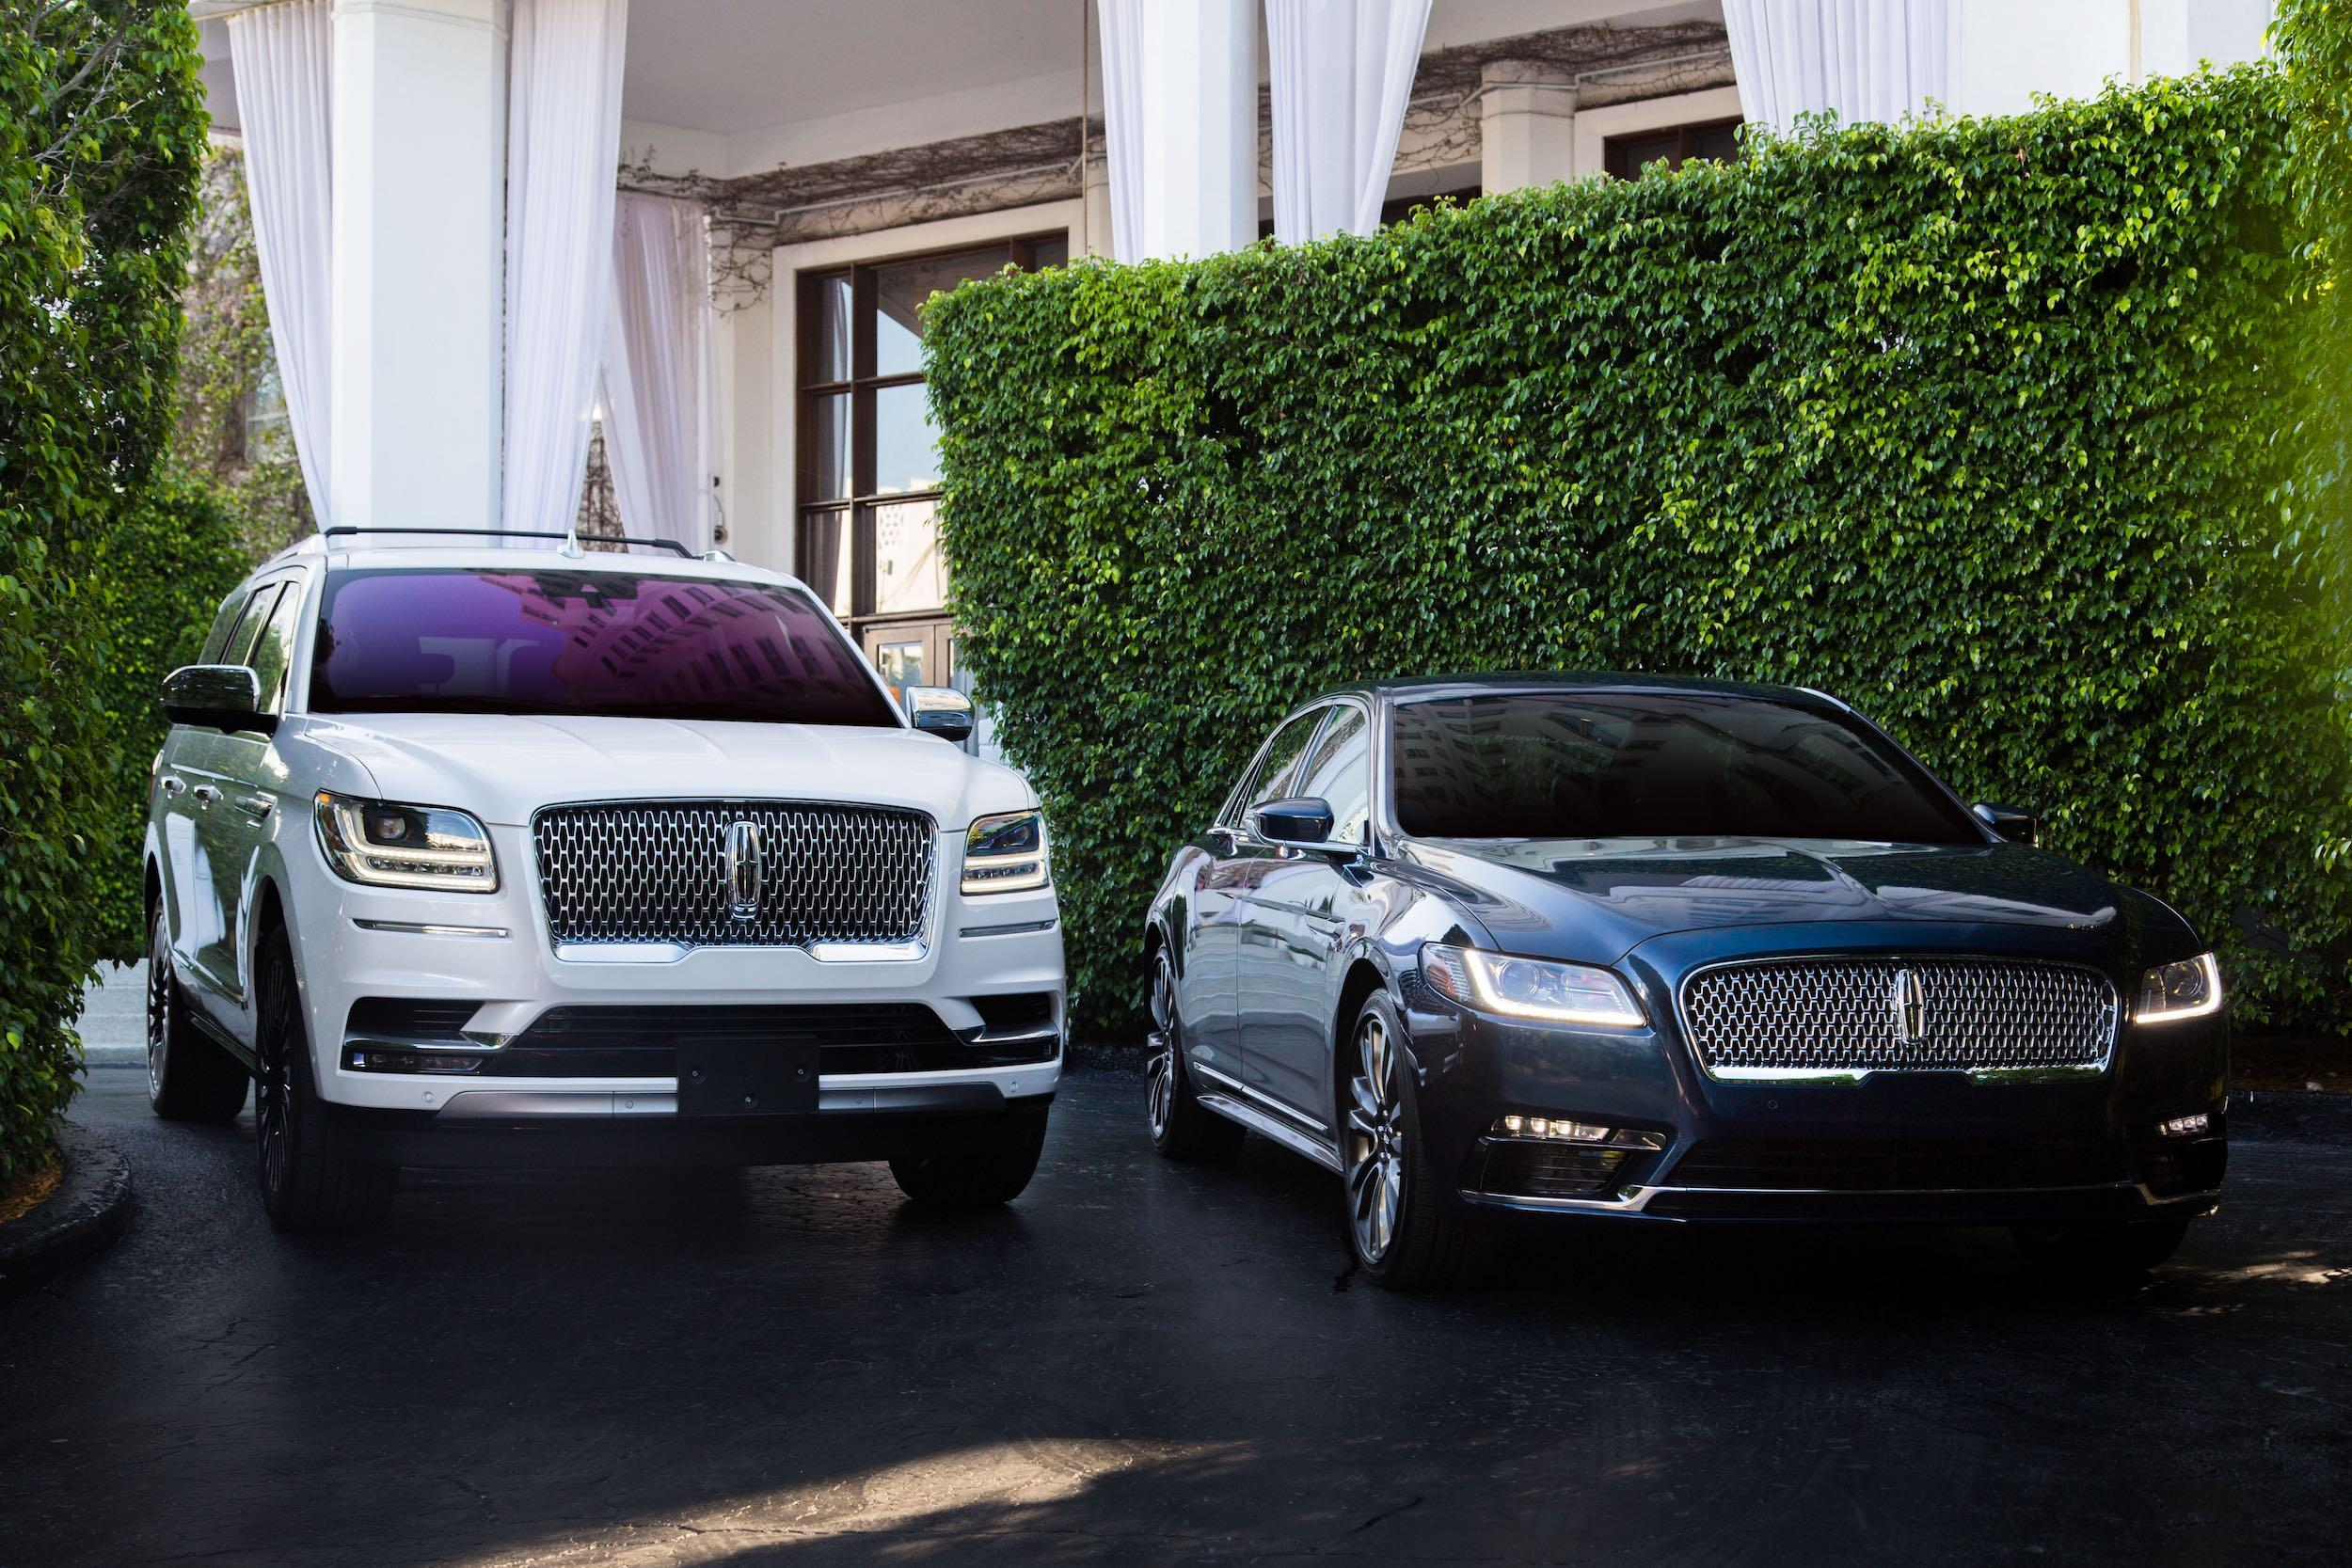 White lincoln navigator and black Lincoln towncar